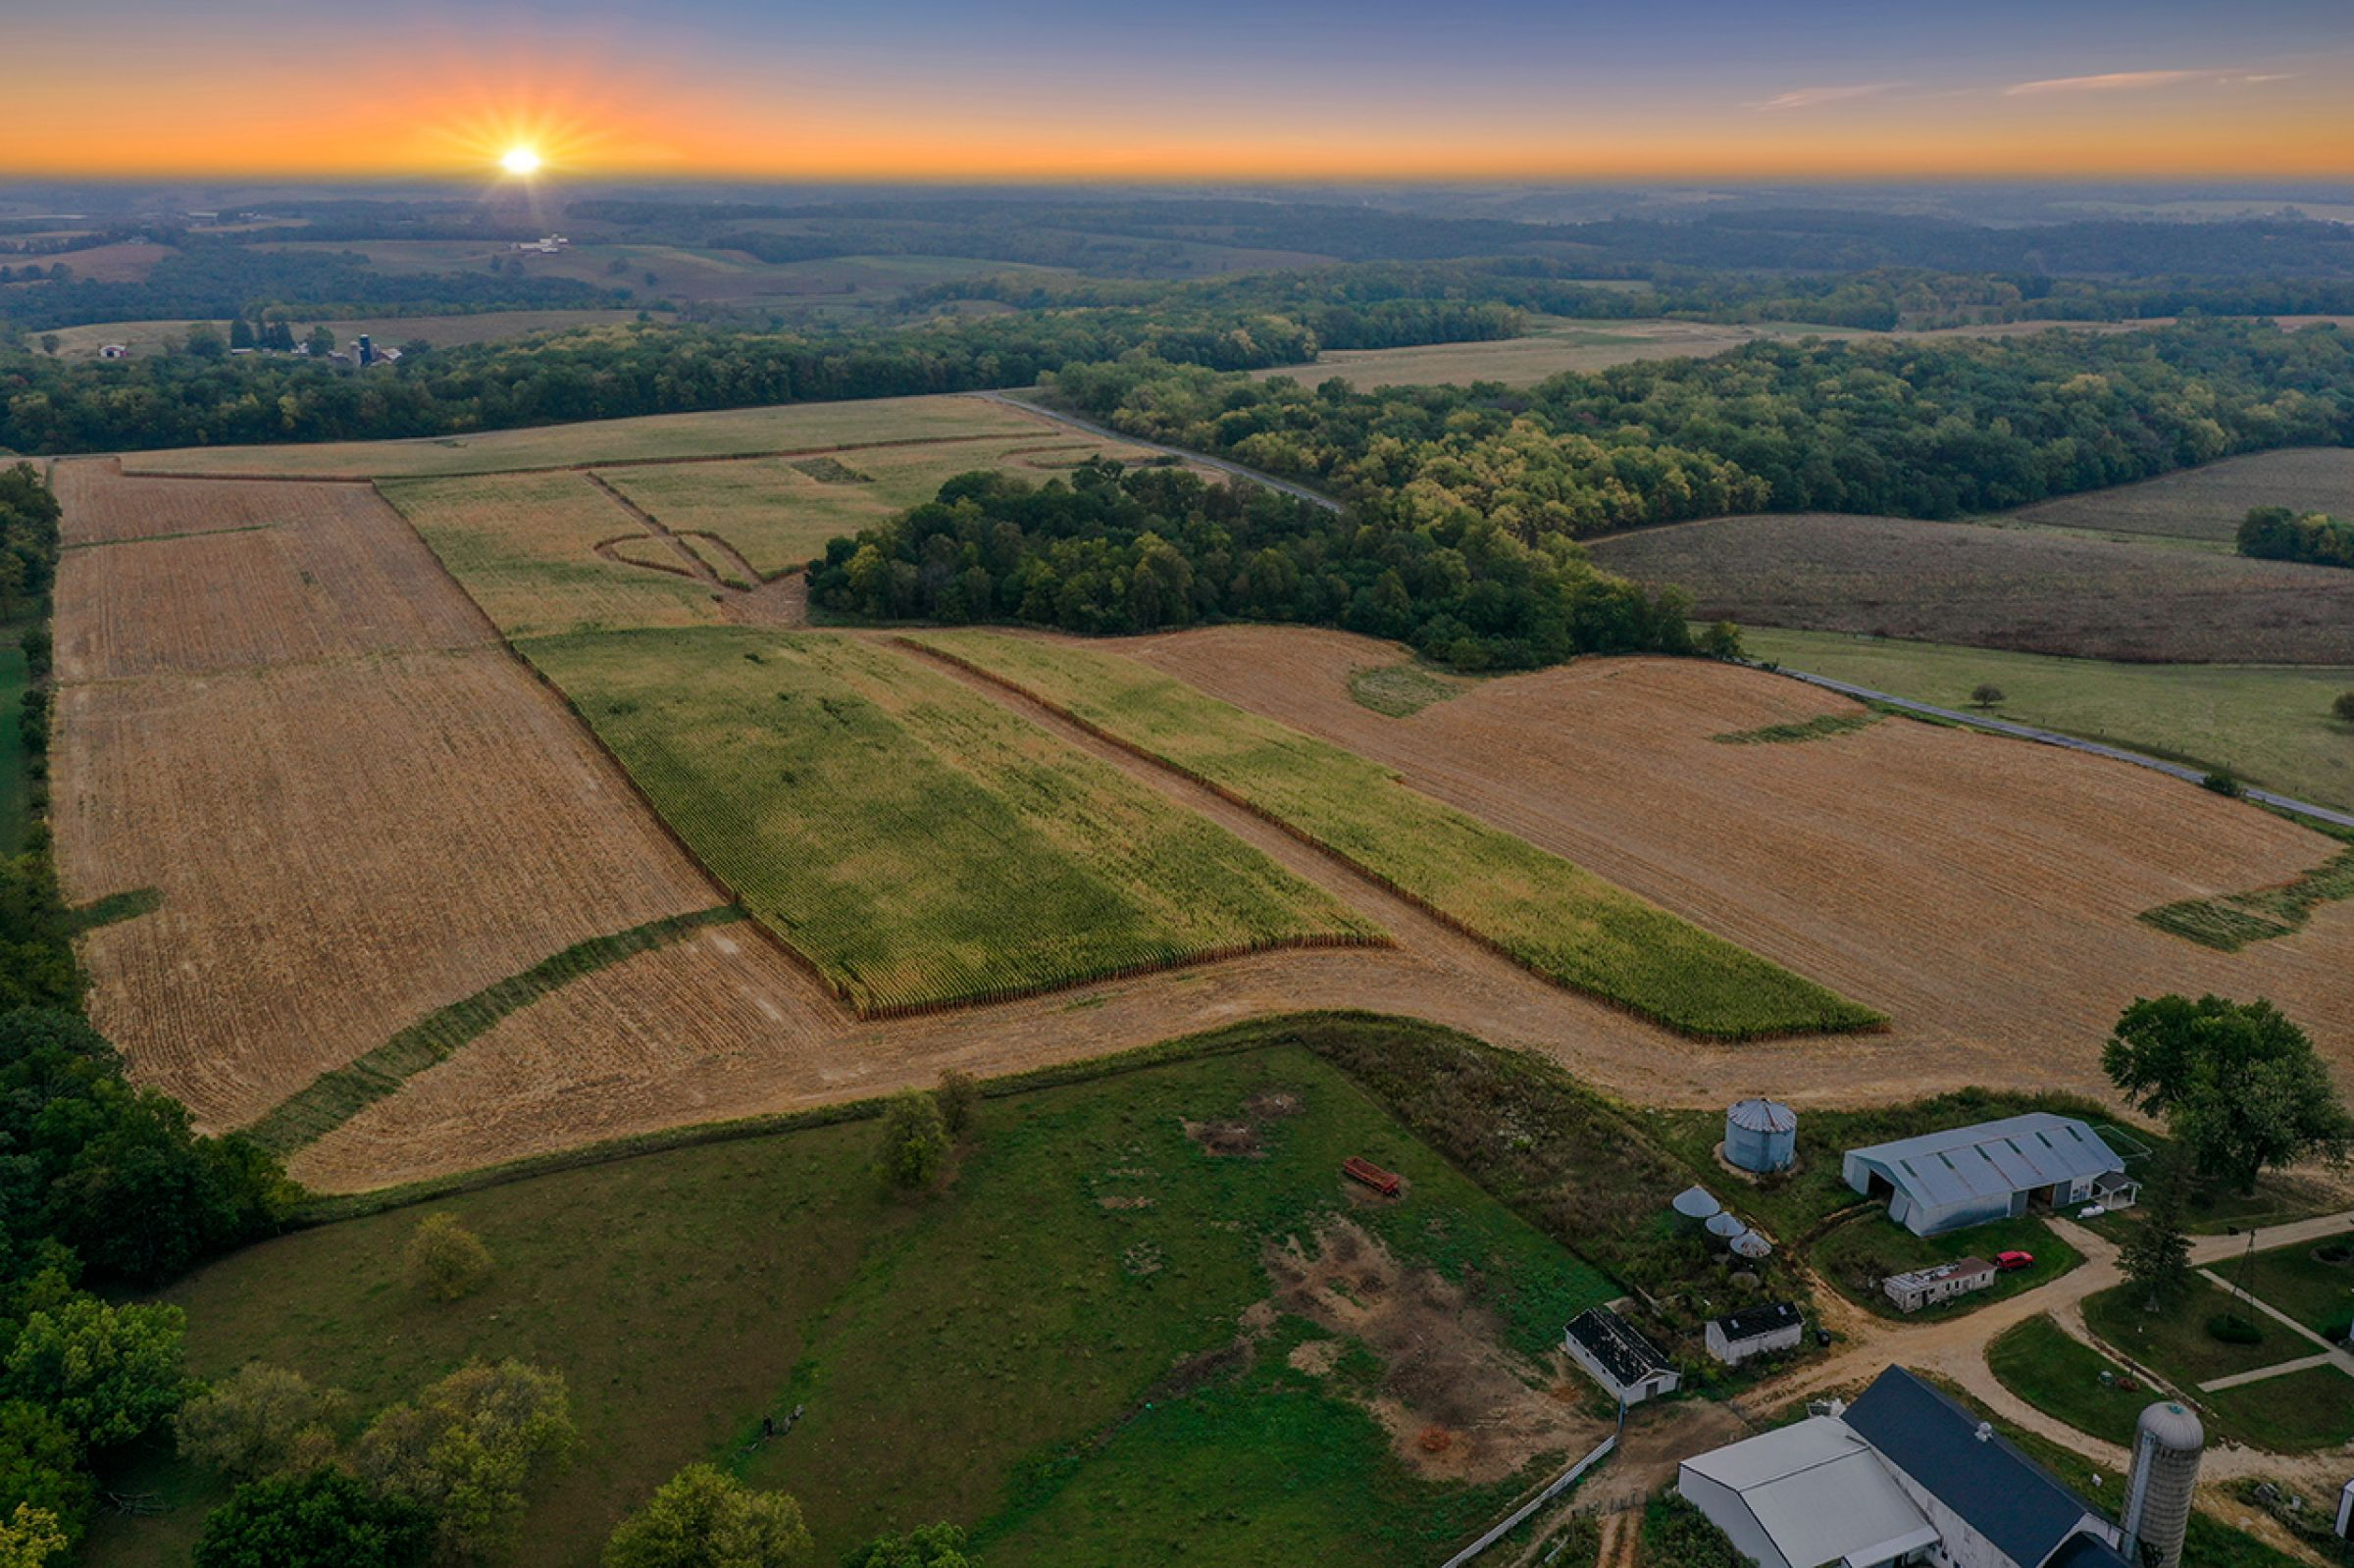 auctions-land-lafayette-county-wisconsin-138-acres-listing-number-15758-2-2021-09-21-155735.jpg